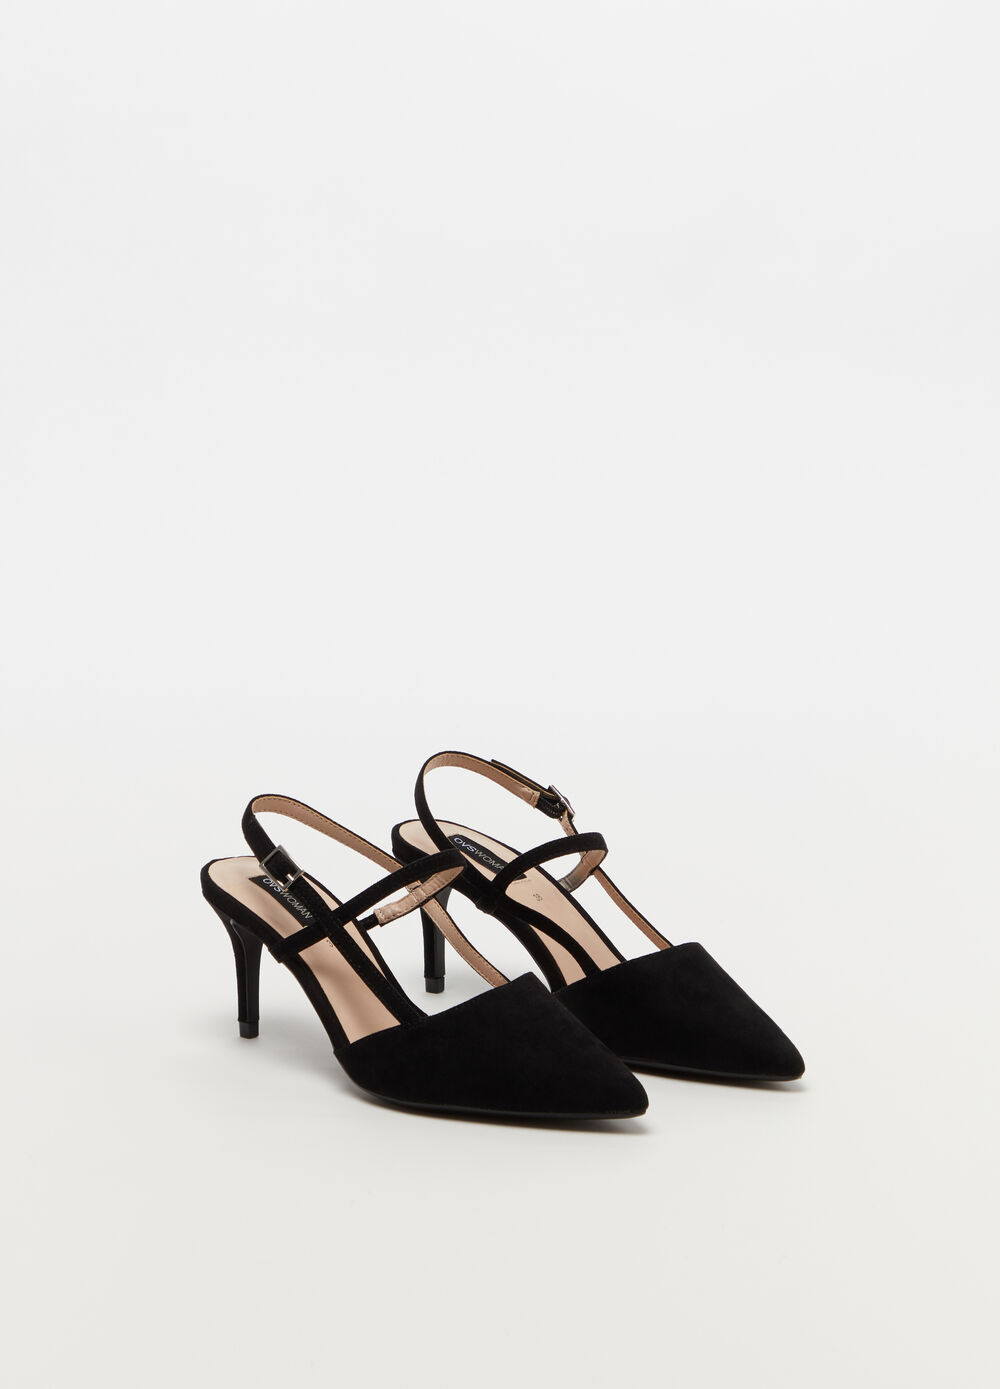 Pointed court shoe with medium heel